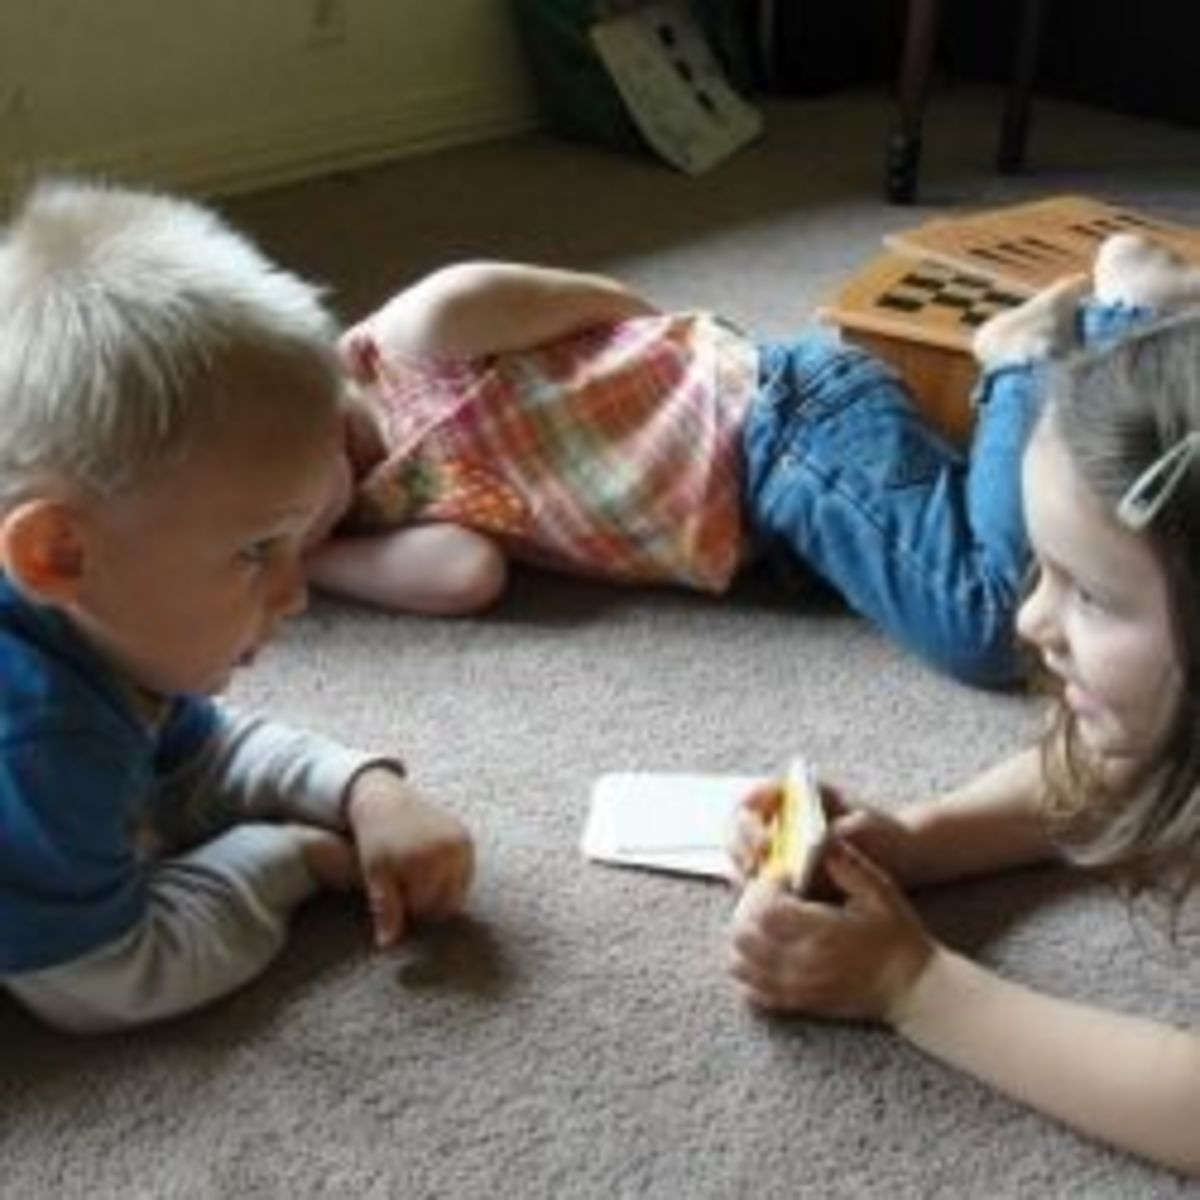 What to Do with Toddlers and Babies While Homeschooling Older Children: Taming Toddler Tornadoes